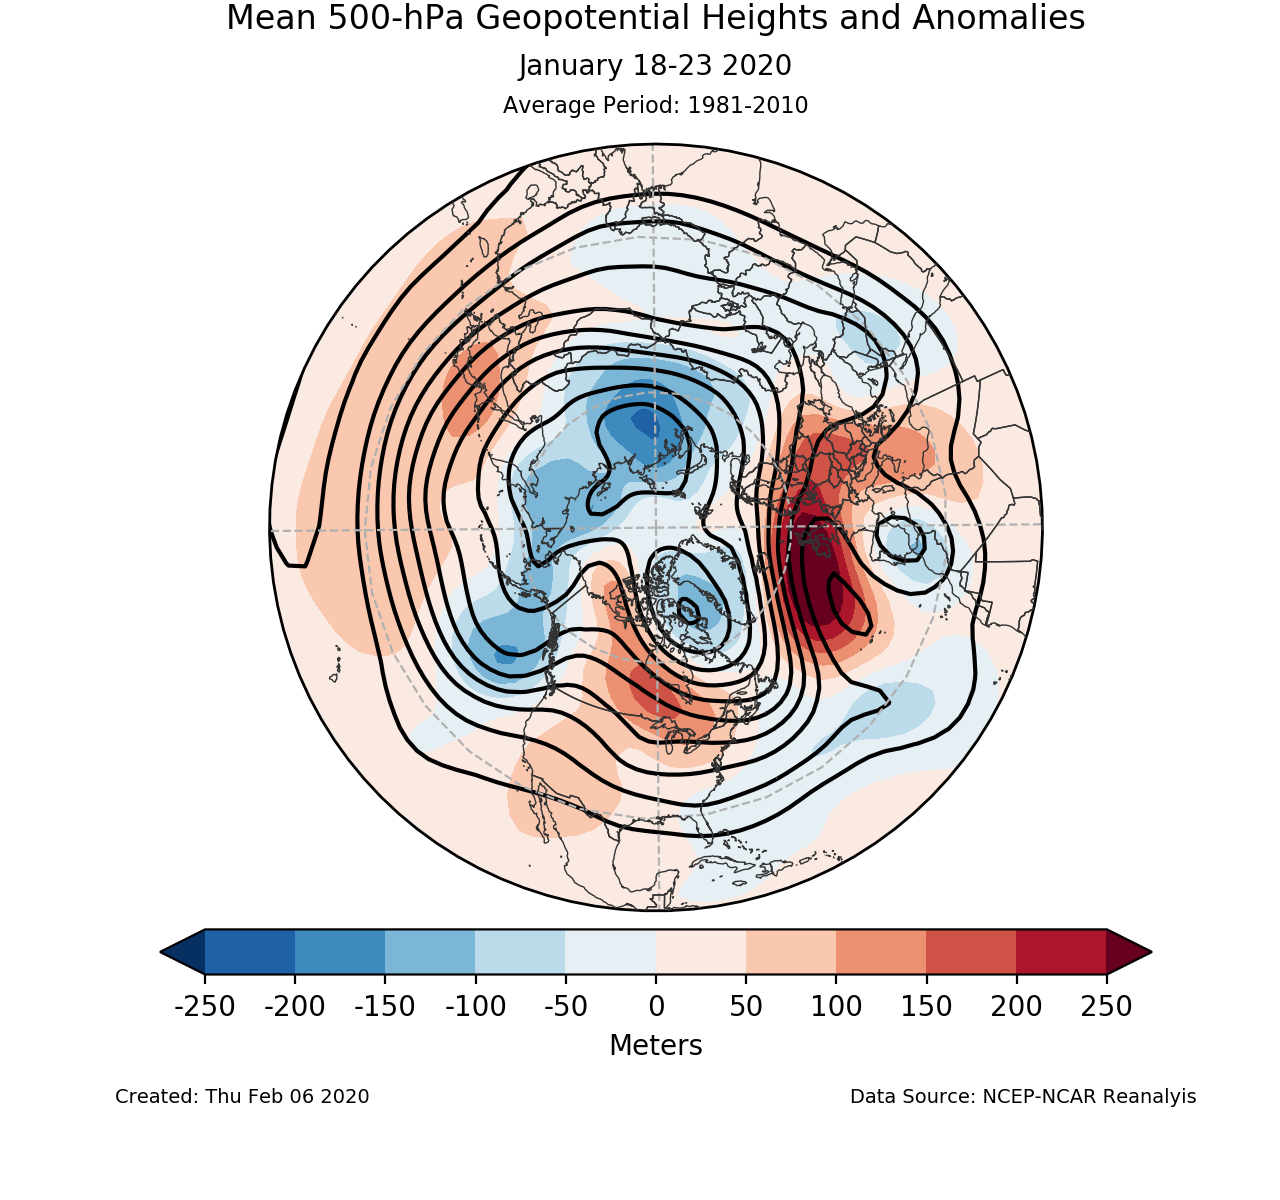 500-mb mean circulation for the Northern Hemisphere for January 18-23 2020